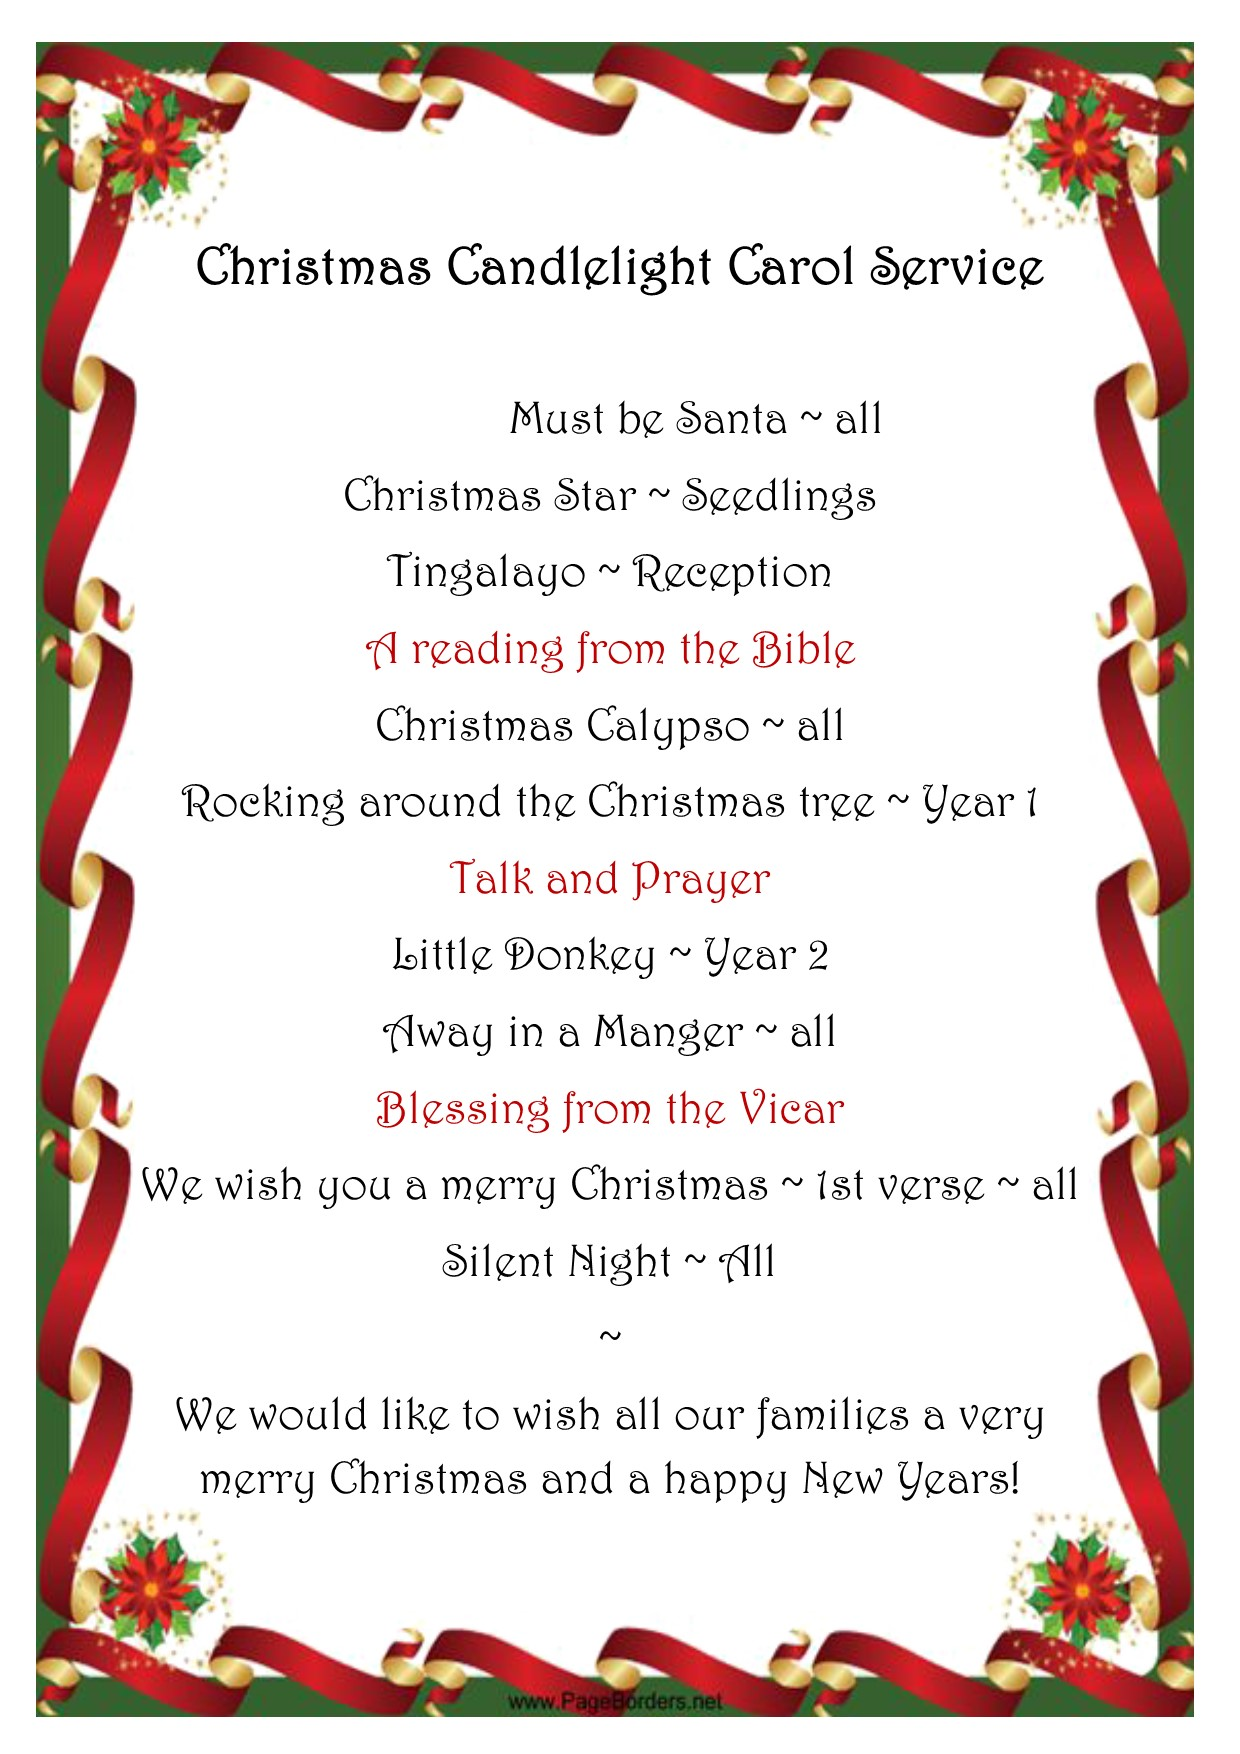 Christmas Candlelight Carol Service ~ Order of Service